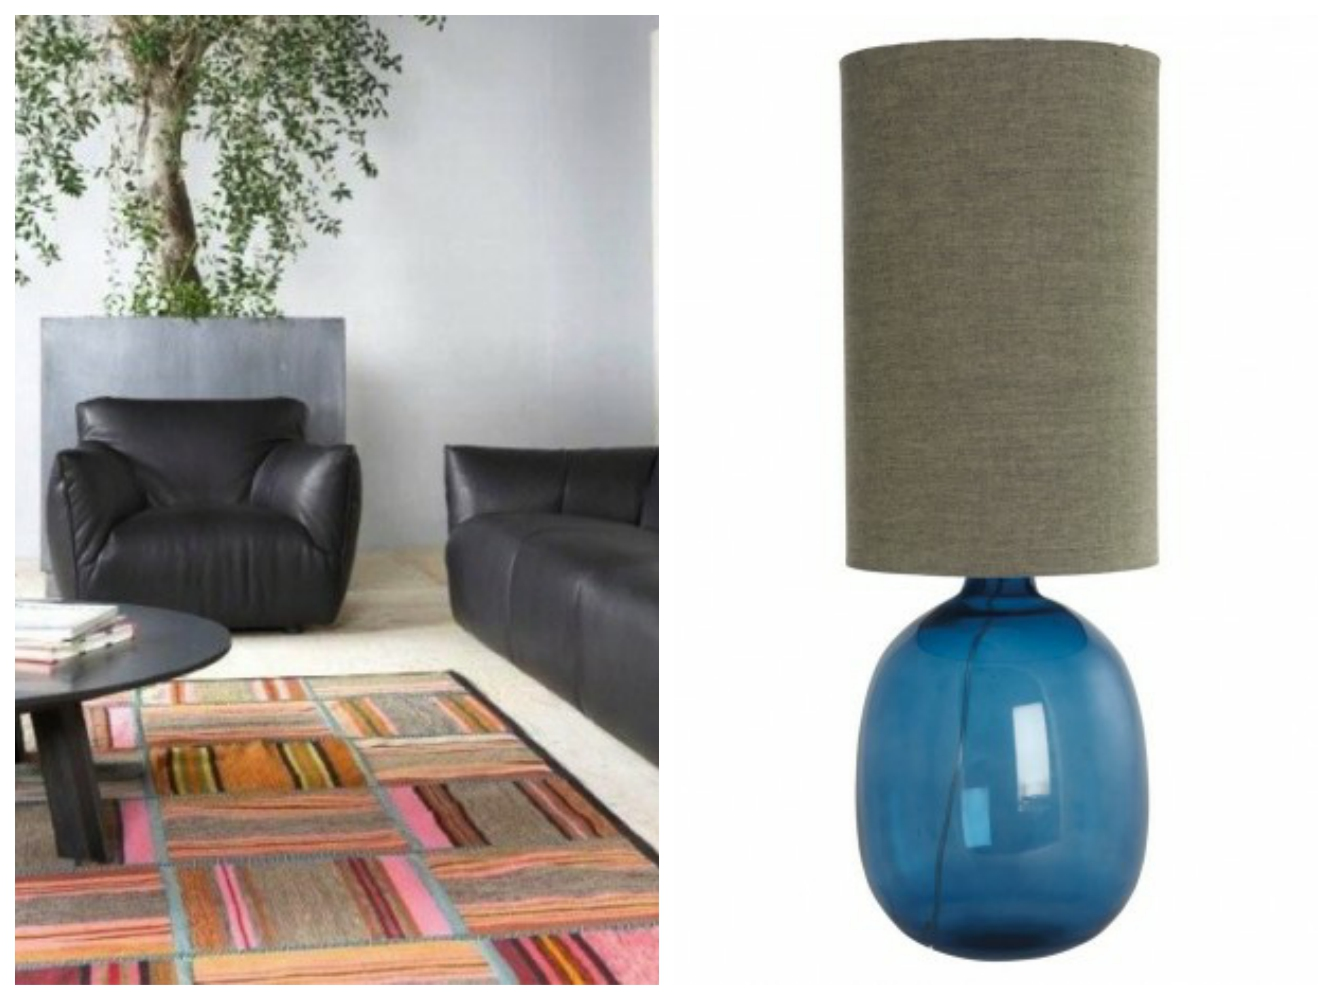 Lamp and patchwork rug from ReallyNiceThings